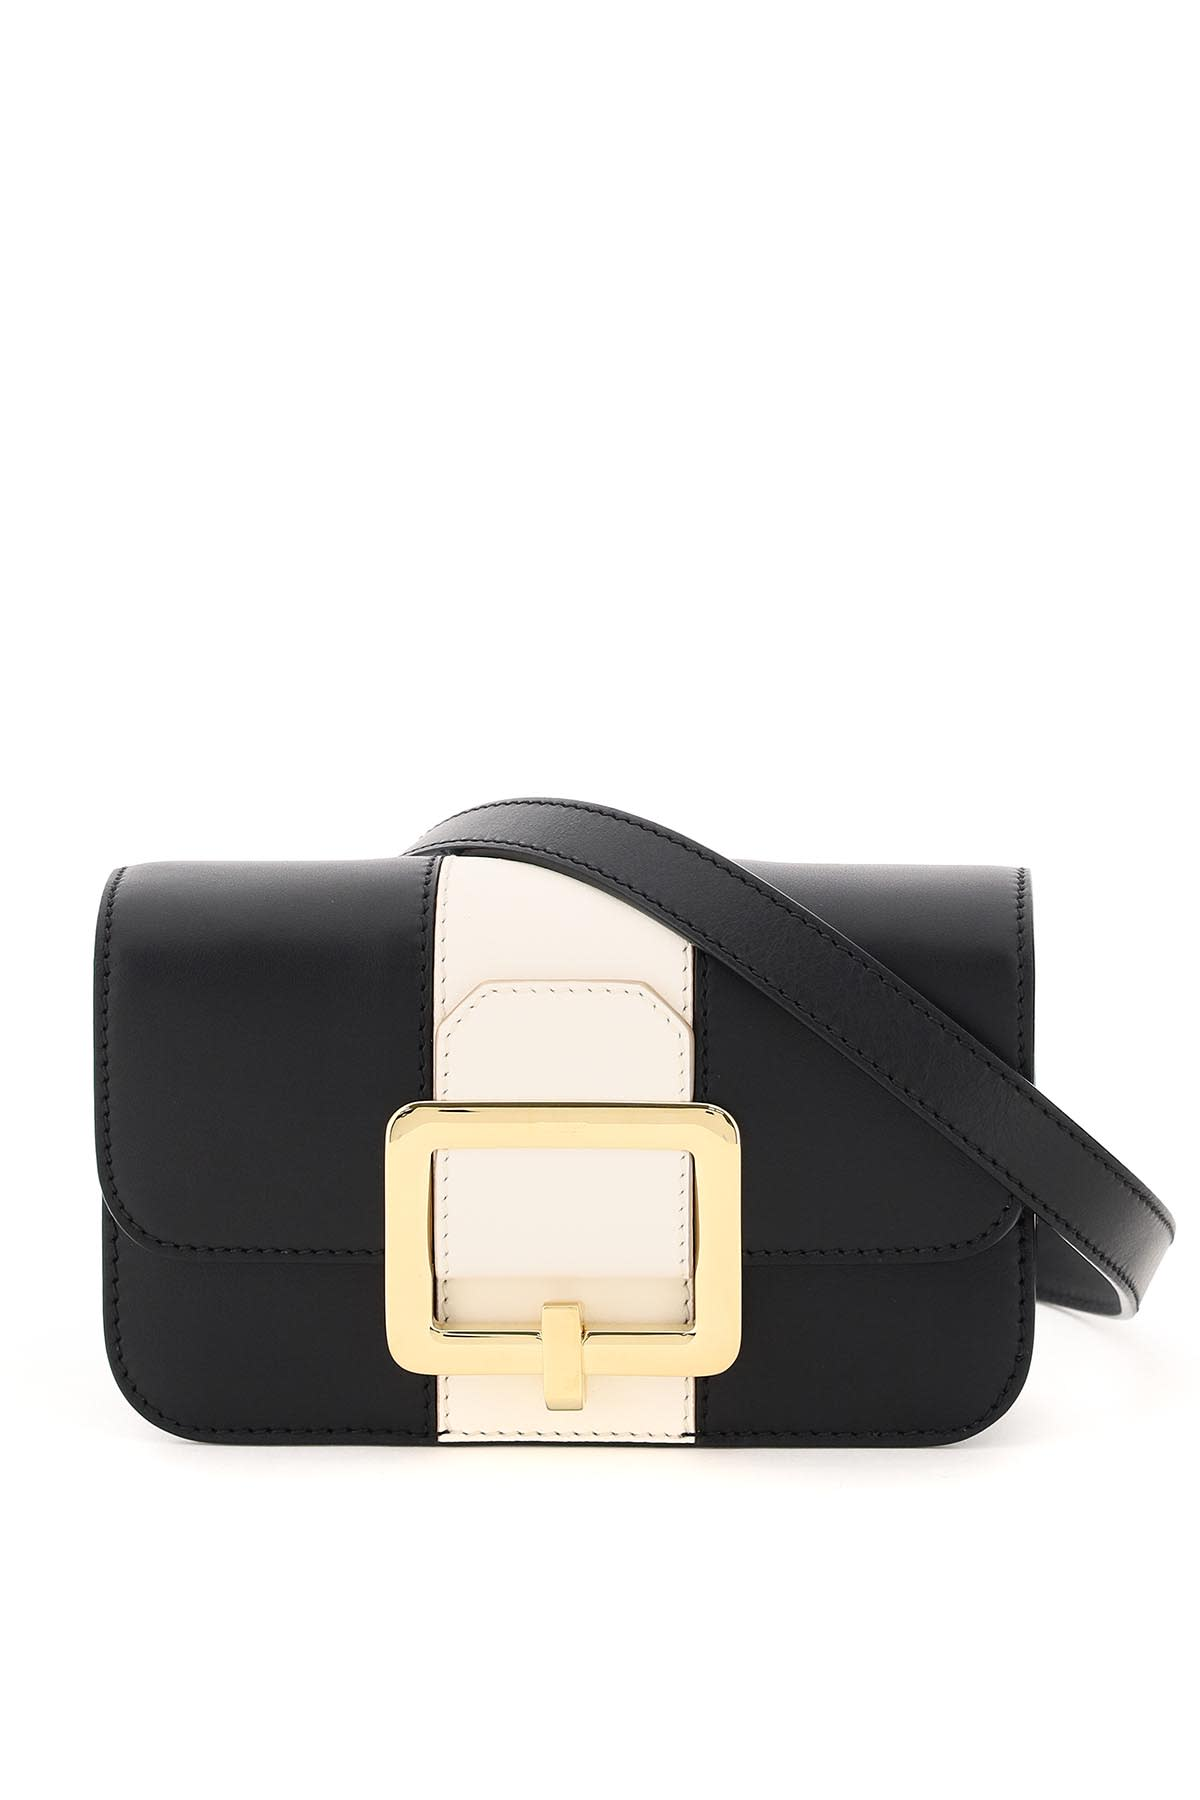 Bally JANELLE S SHOULDER BAG